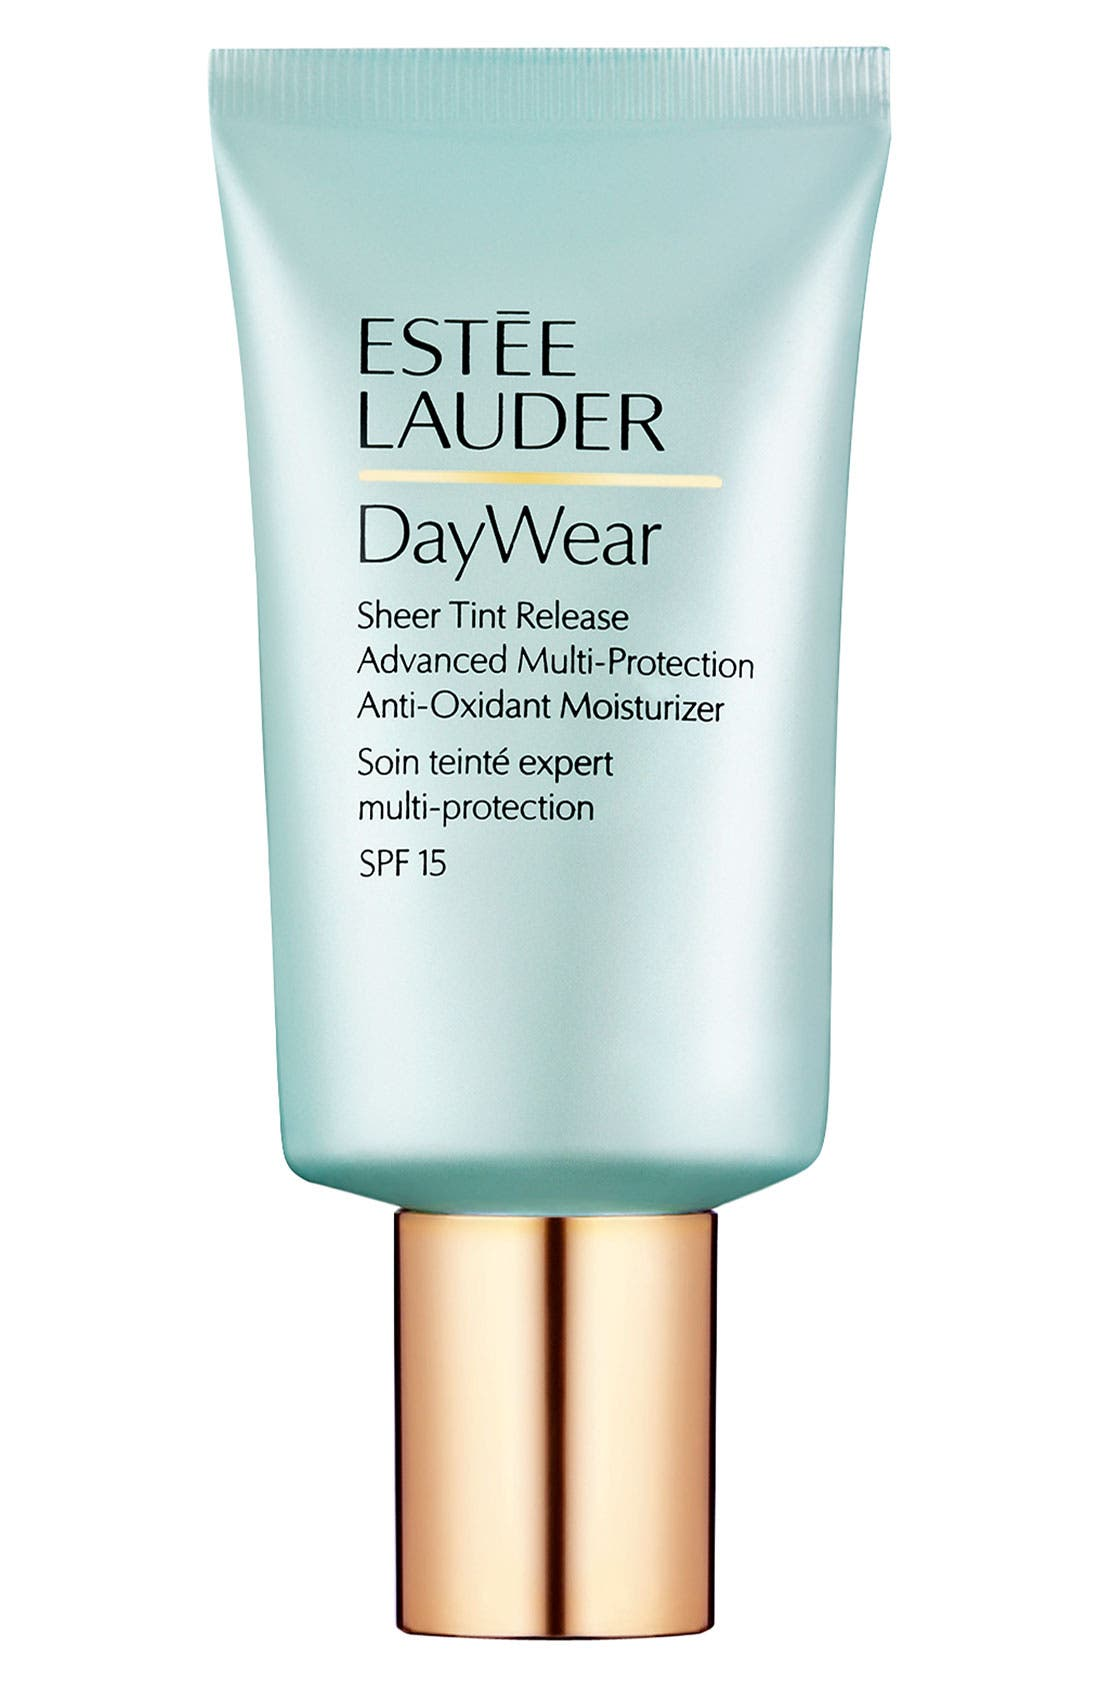 DayWear Sheer Tint Release Advanced Multi-Protection Anti-Oxidant Moisturizer SPF 15,                         Main,                         color, NO COLOR